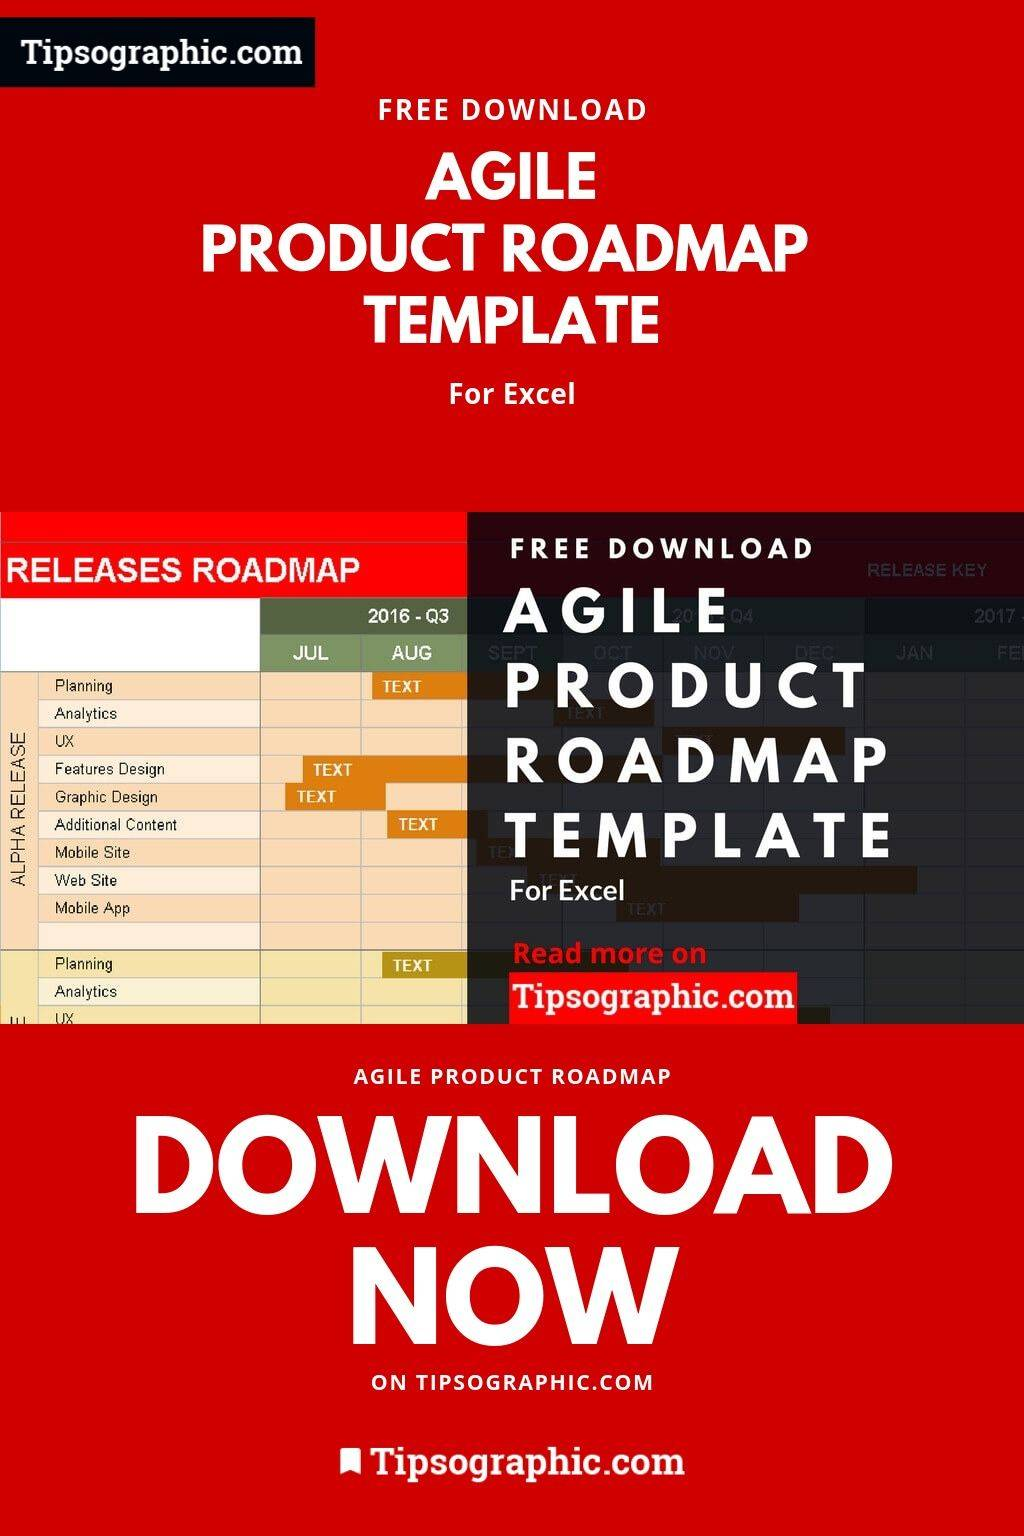 Product Roadmap Template Excel Free Download